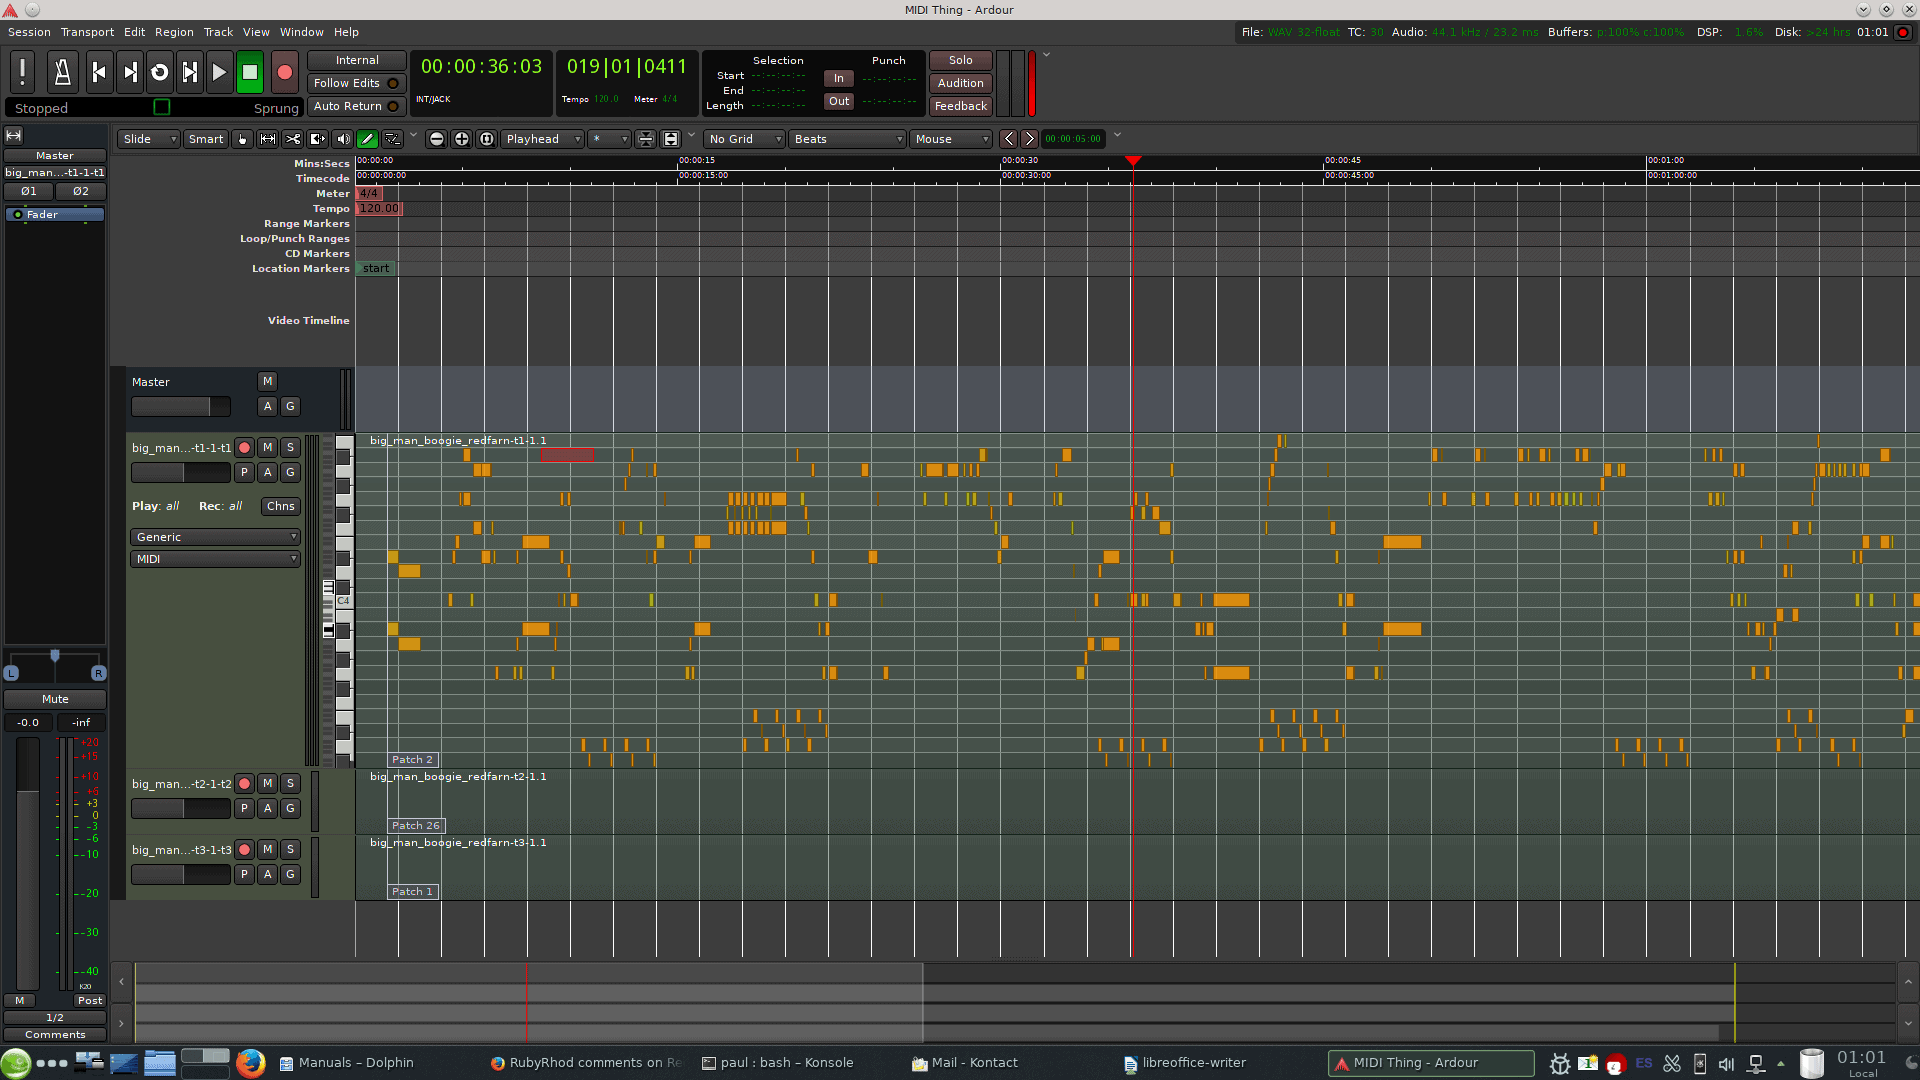 Expand a MIDI track to show the piano roll. Use the pencil tool to add and edit notes.